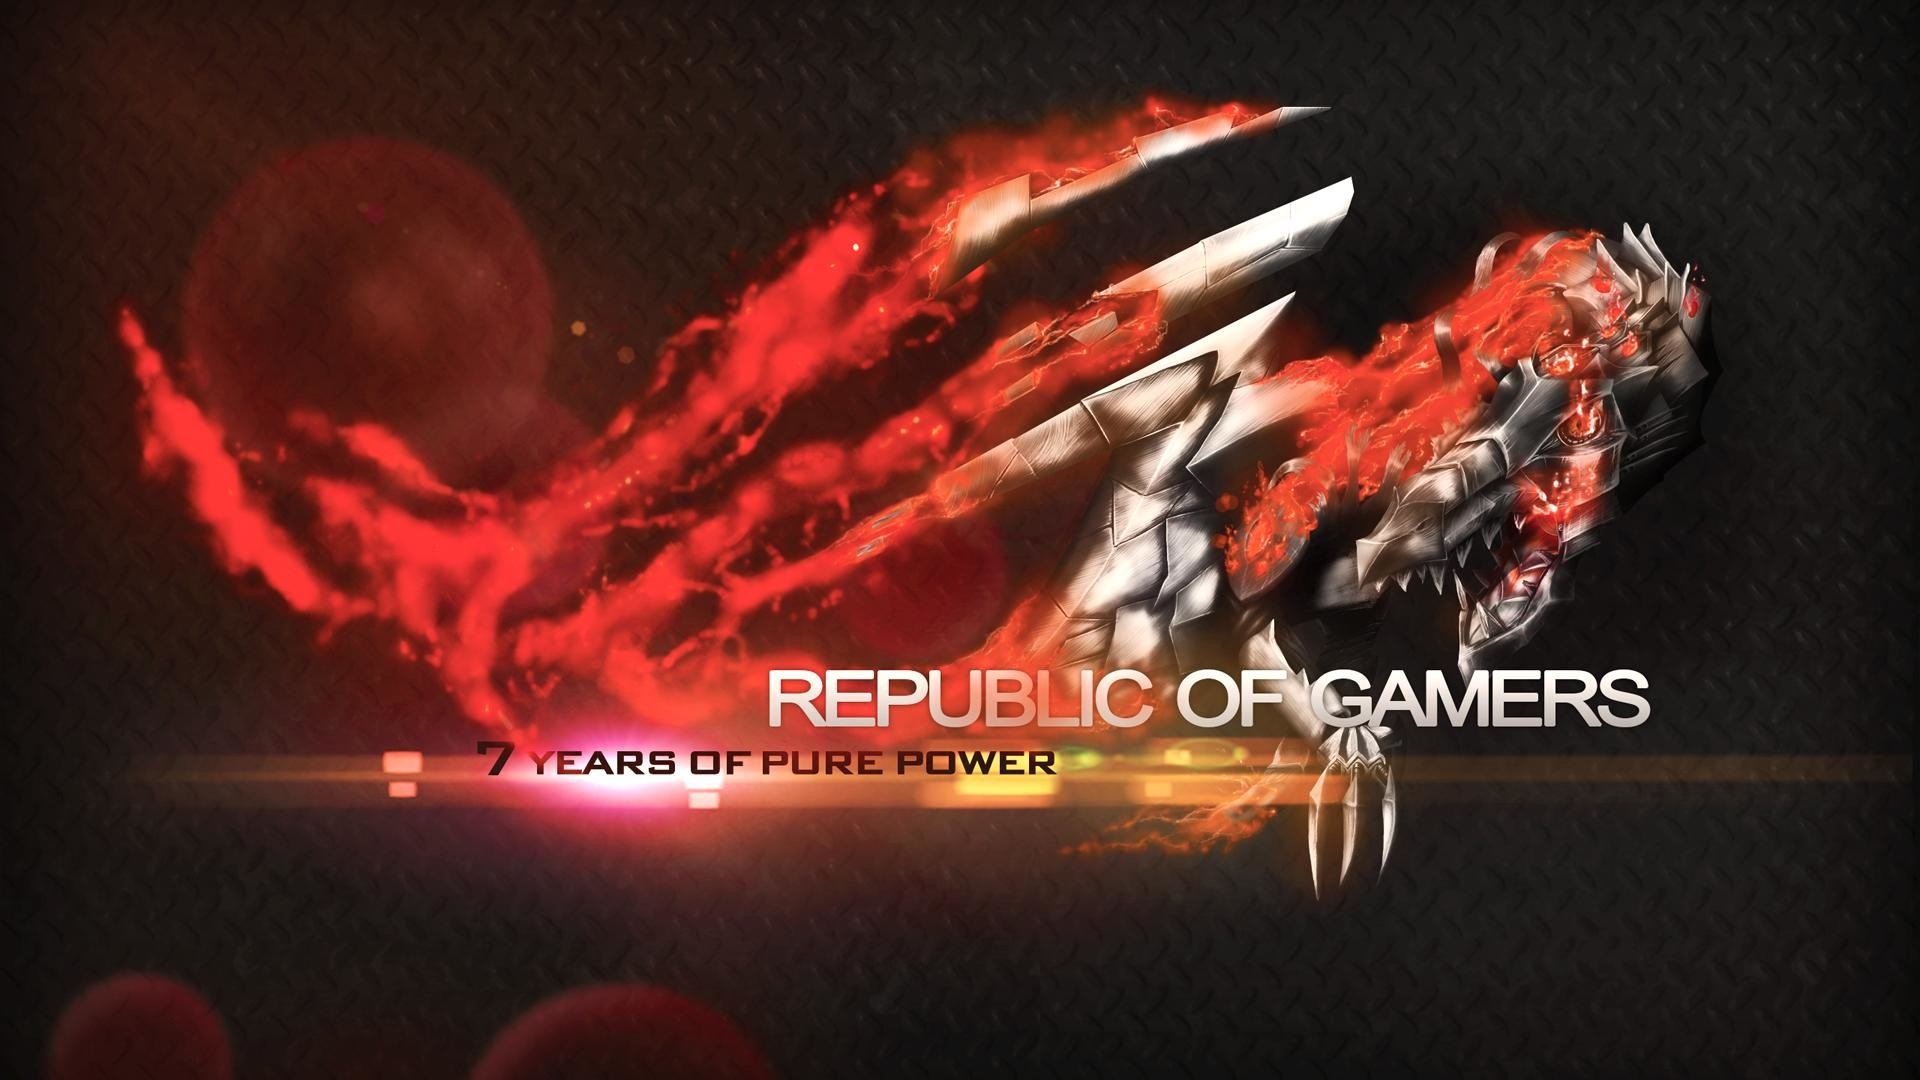 2013 ROG Desktop Wallpaper Competition! [until 30th April] [Archive] – ASUS  Republic of Gamers [ROG]   The Choice of Champions – Overclocking, PC  Gaming, …